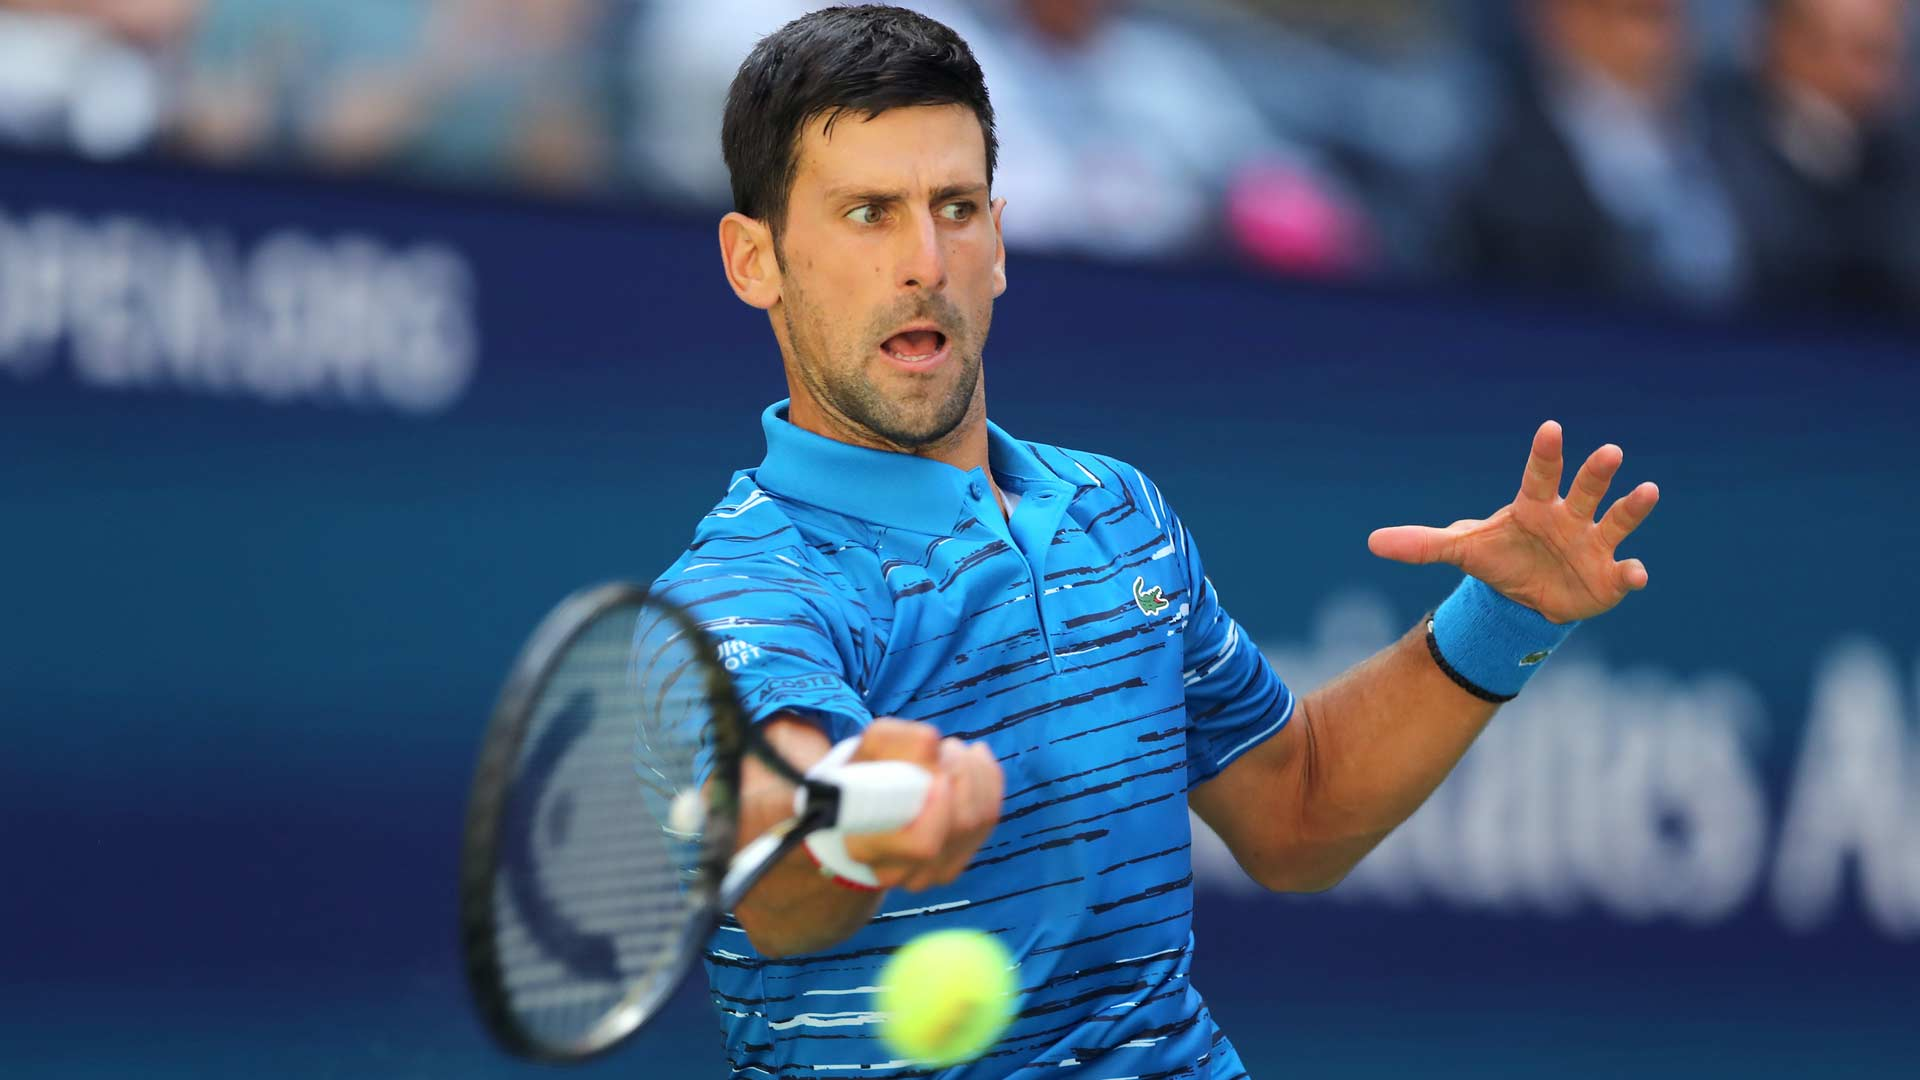 Day 3 Preview Schedule Djokovic Federer Put Us Open Winning Streaks On The Line Atp Tour Tennis